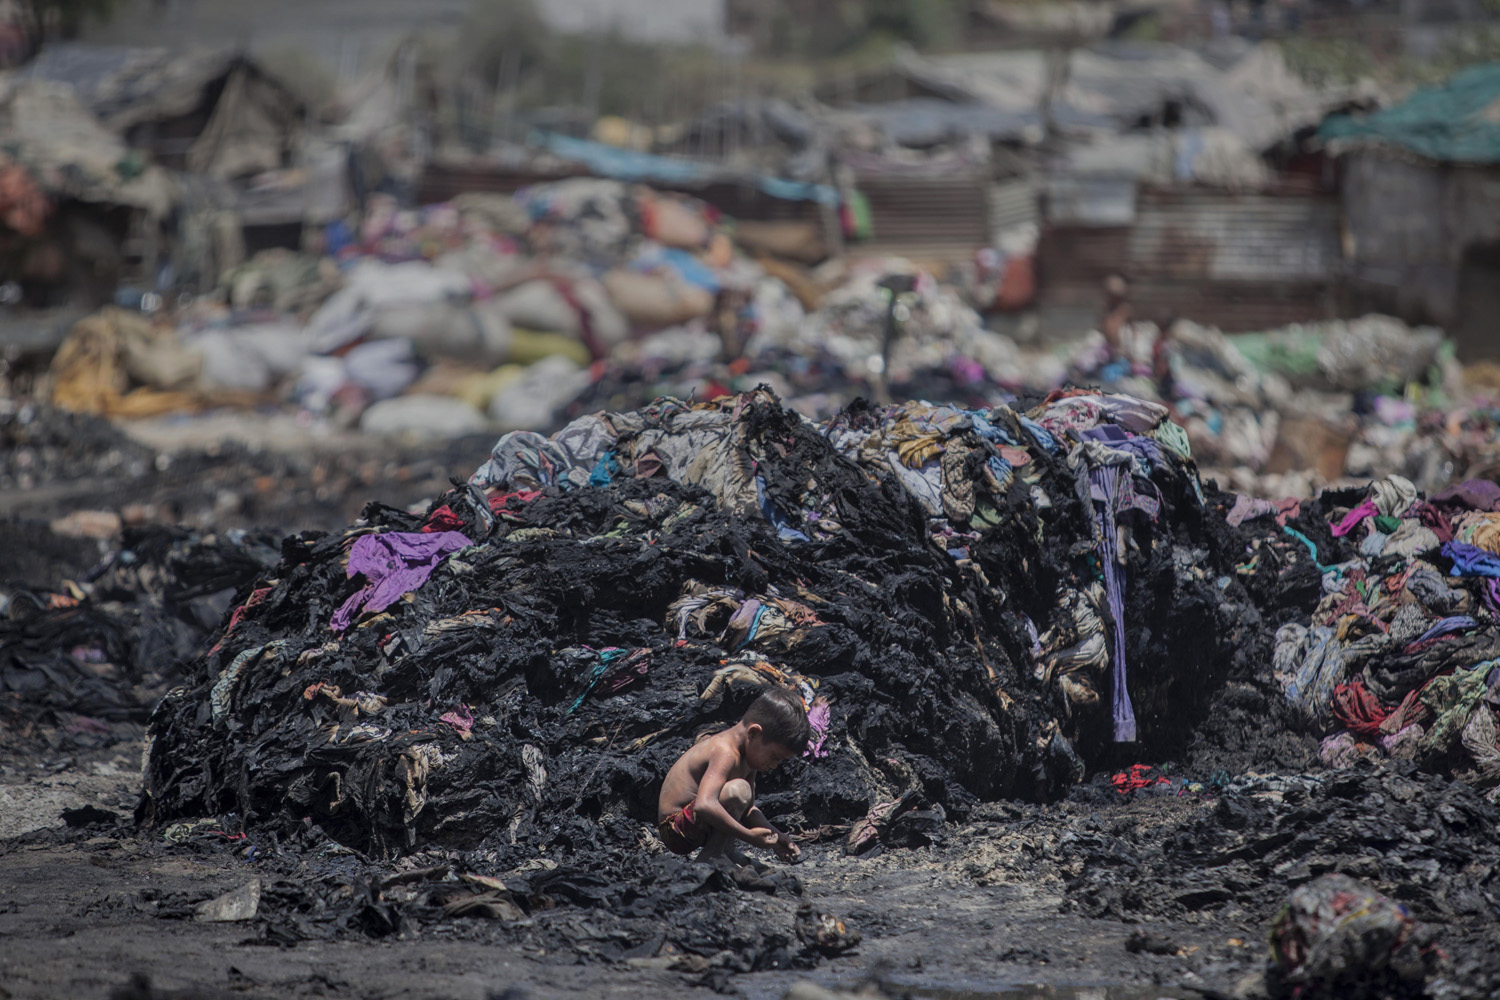 Apr. 28, 2014. An Indian boy looks for scrap metal amid charred debris after a fire at a slum in Ghaziabad, on the outskirts of New Delhi, India.